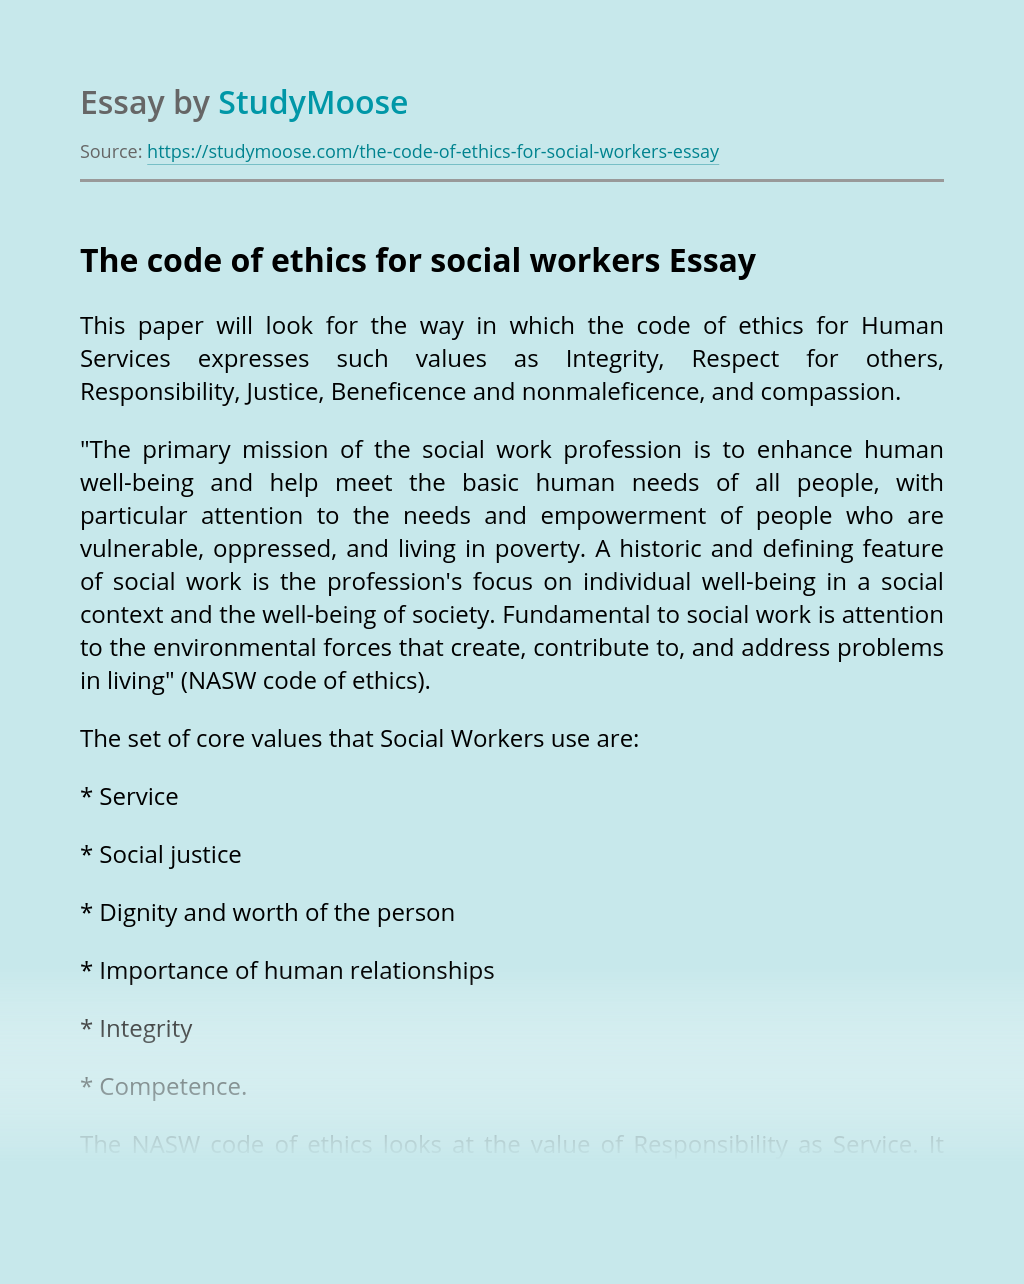 The code of ethics for social workers